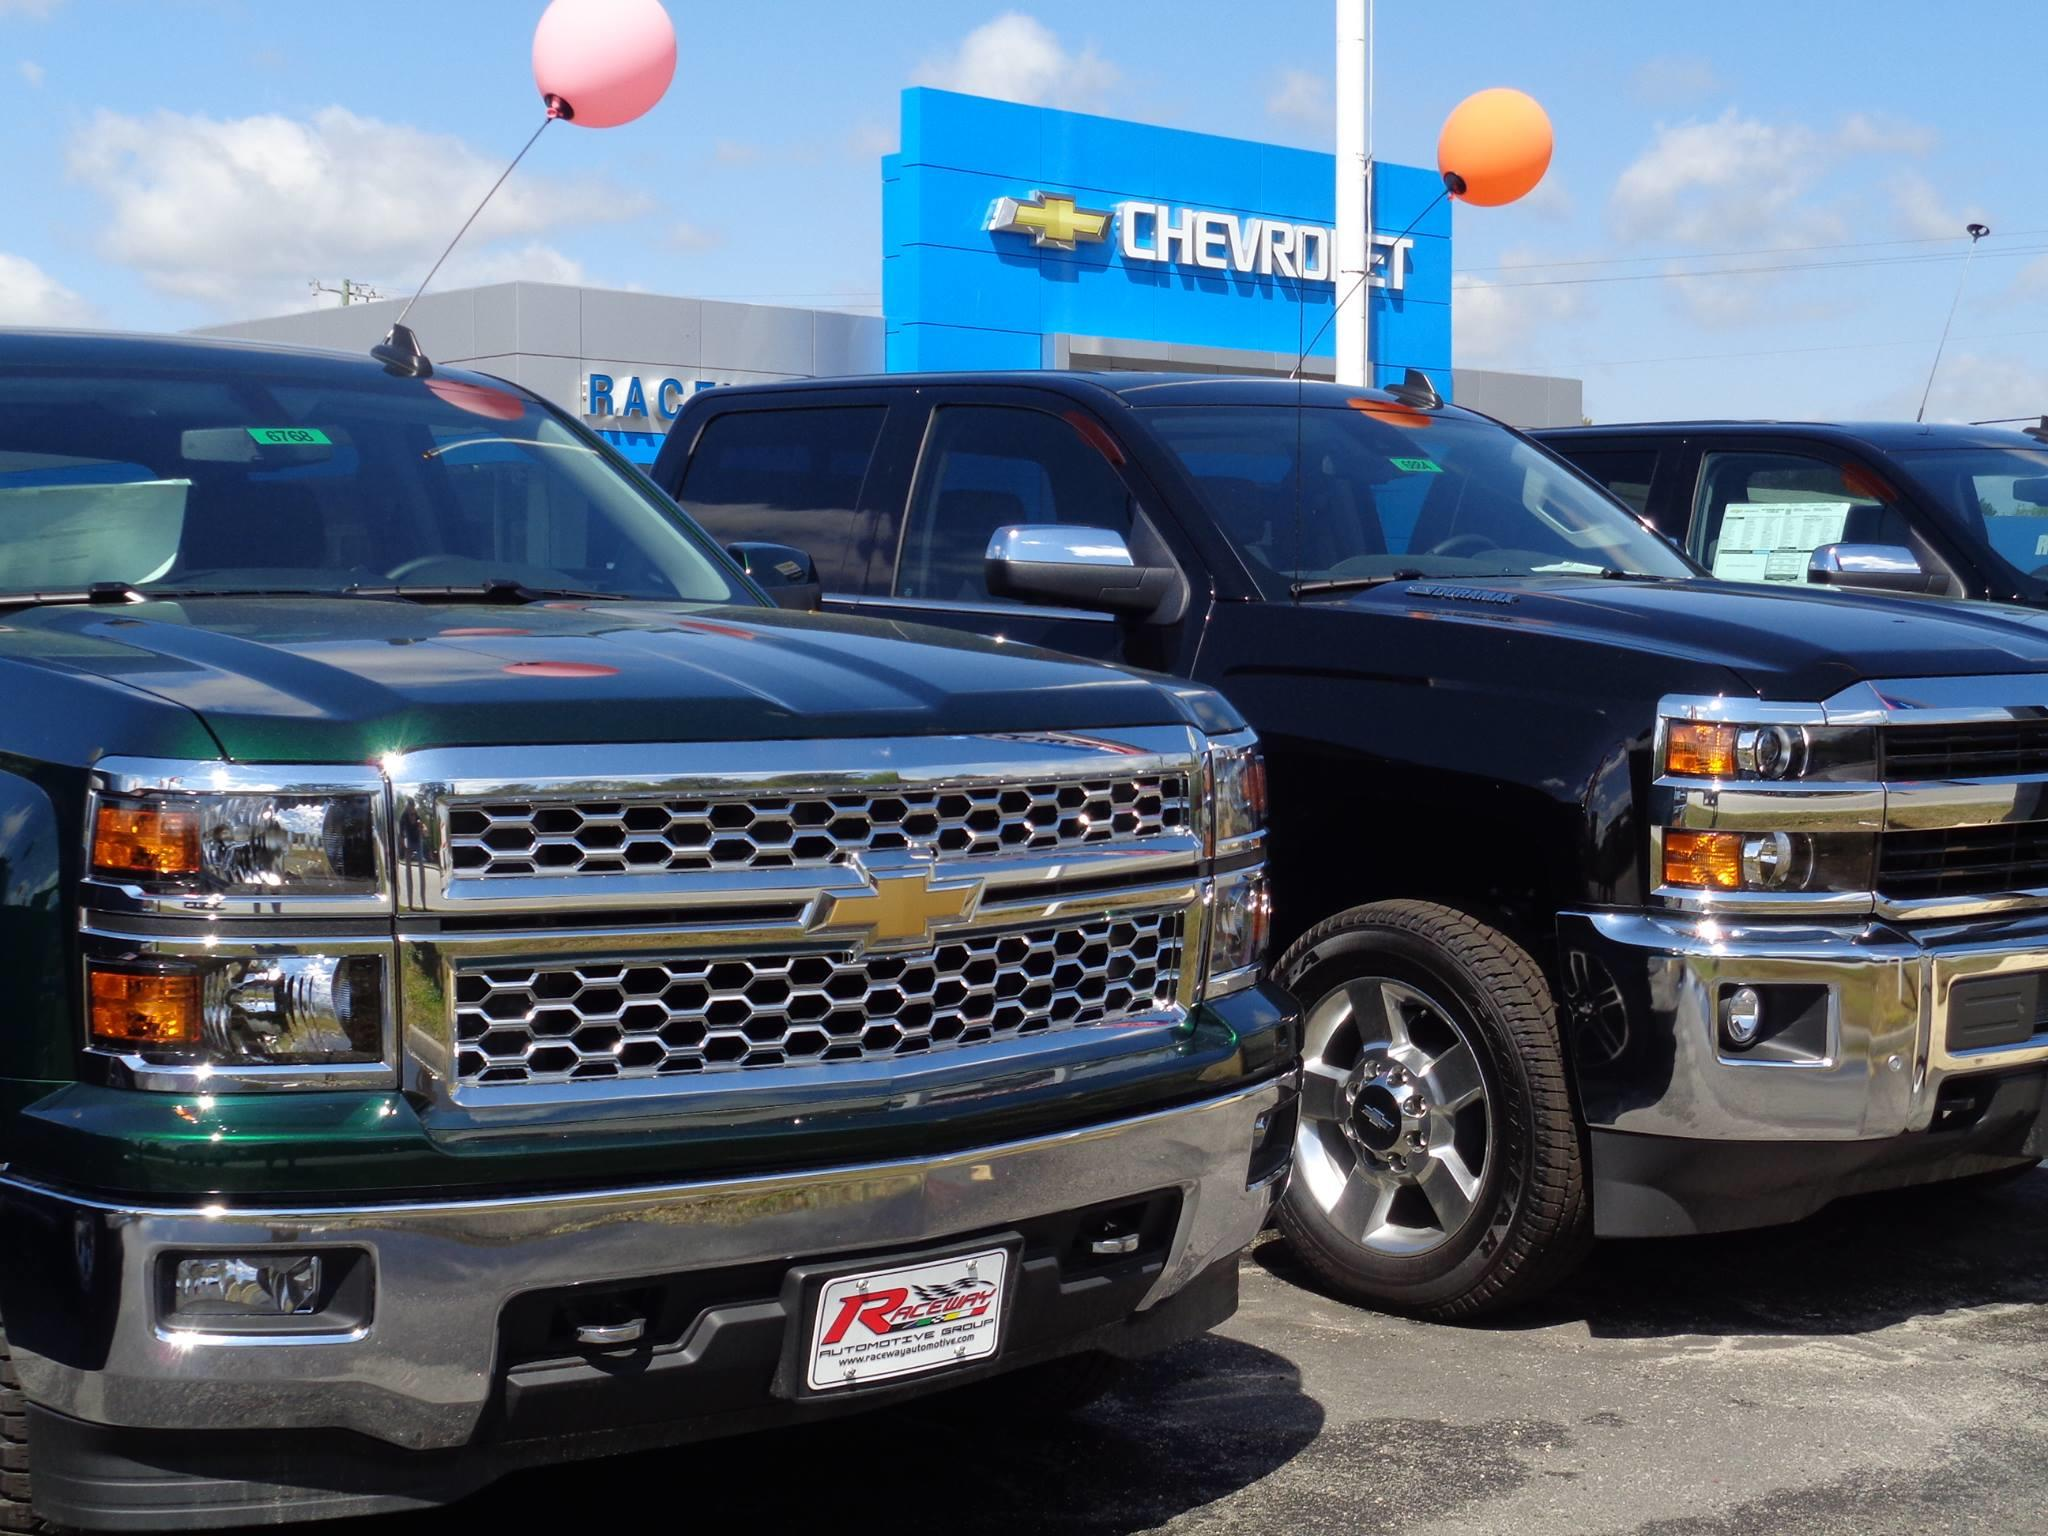 raceway chevrolet in hartsville sc 843 332 0. Cars Review. Best American Auto & Cars Review